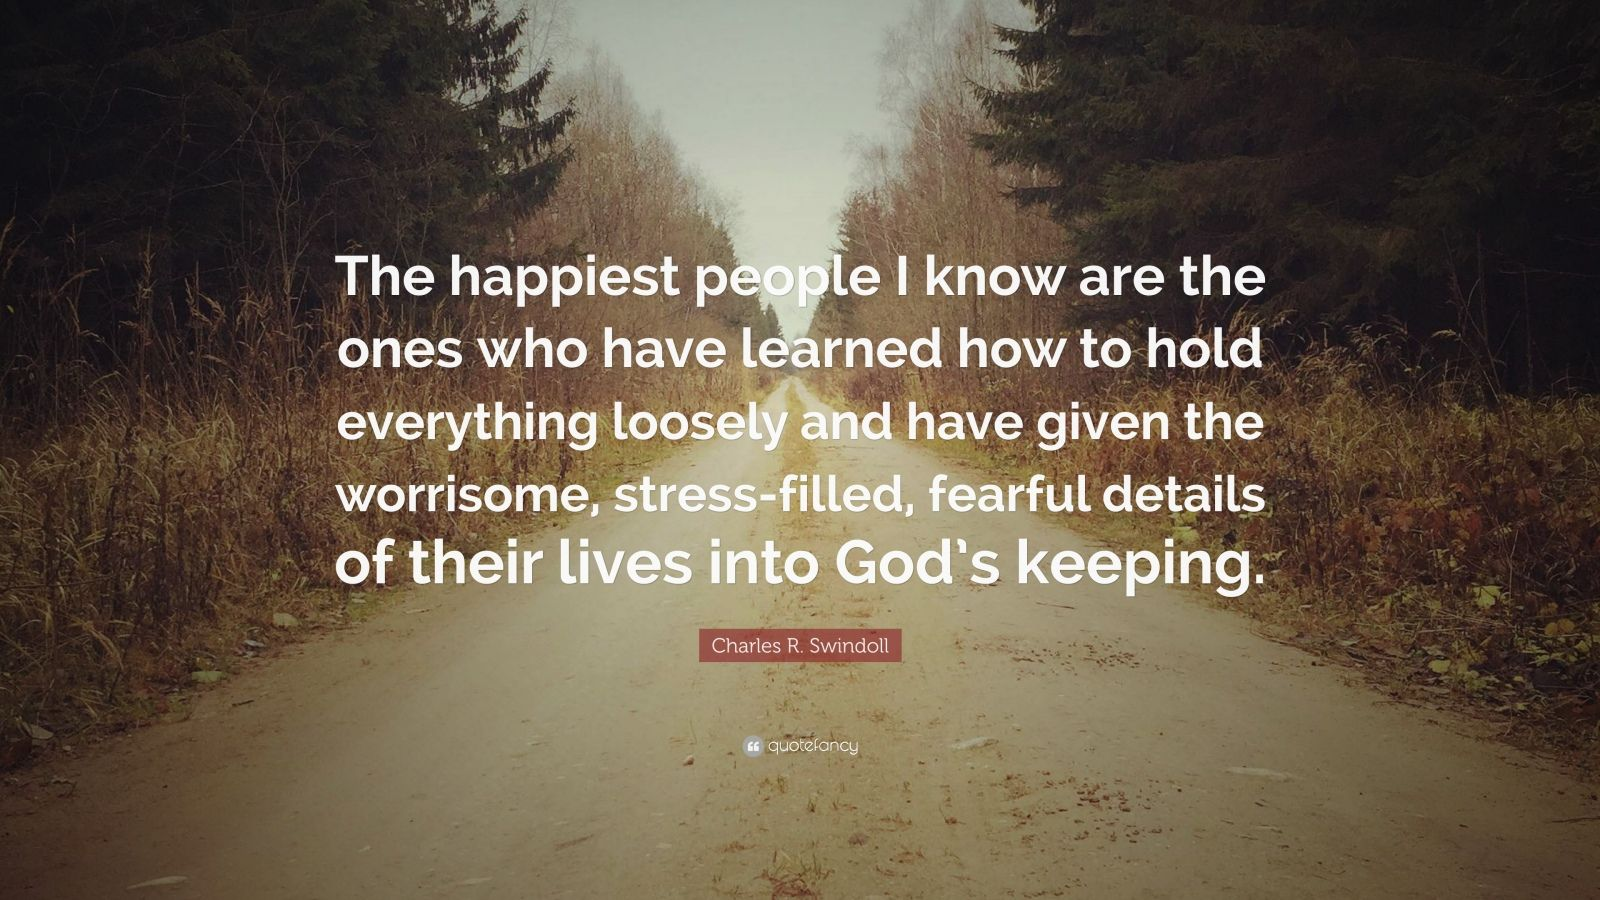 "Charles R. Swindoll Quote: ""The happiest people I know are the ones who have learned how to hold everything loosely and have given the worrisome, stress-filled, fearful details of their lives into God's keeping."""